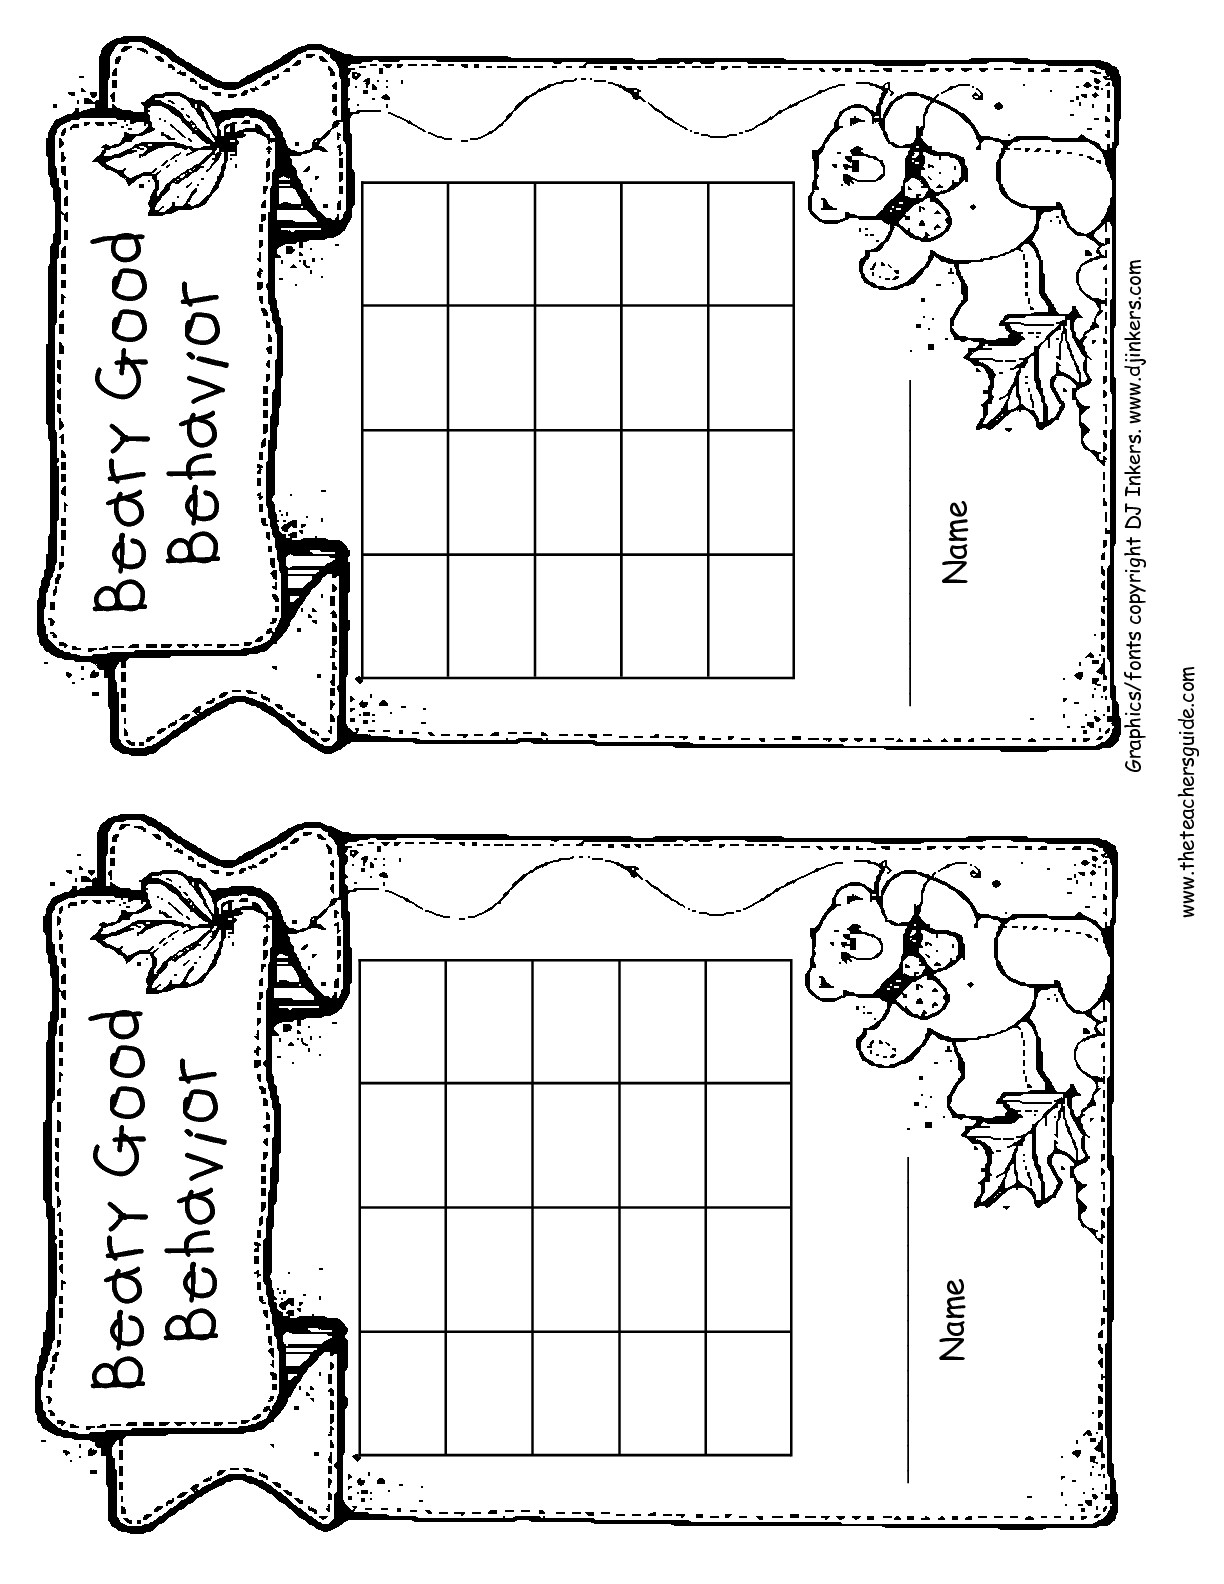 Free Printable Reward And Incentive Charts within Behavior Charts For Kids Templates